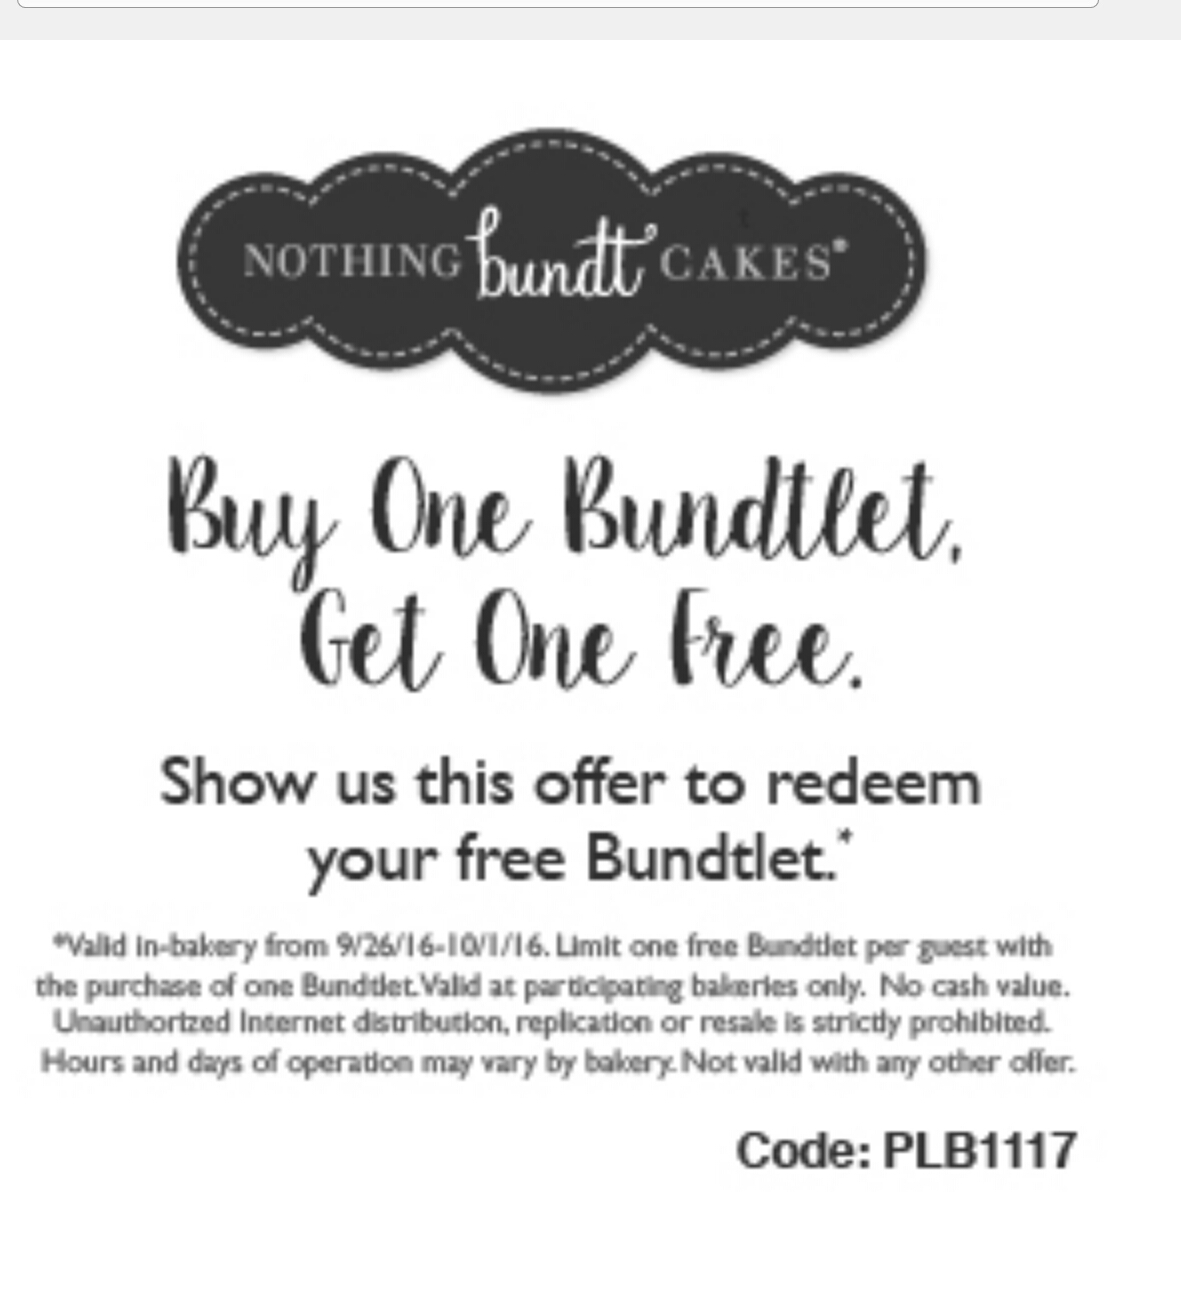 Nothing Bundt Cakes Coupons Printable